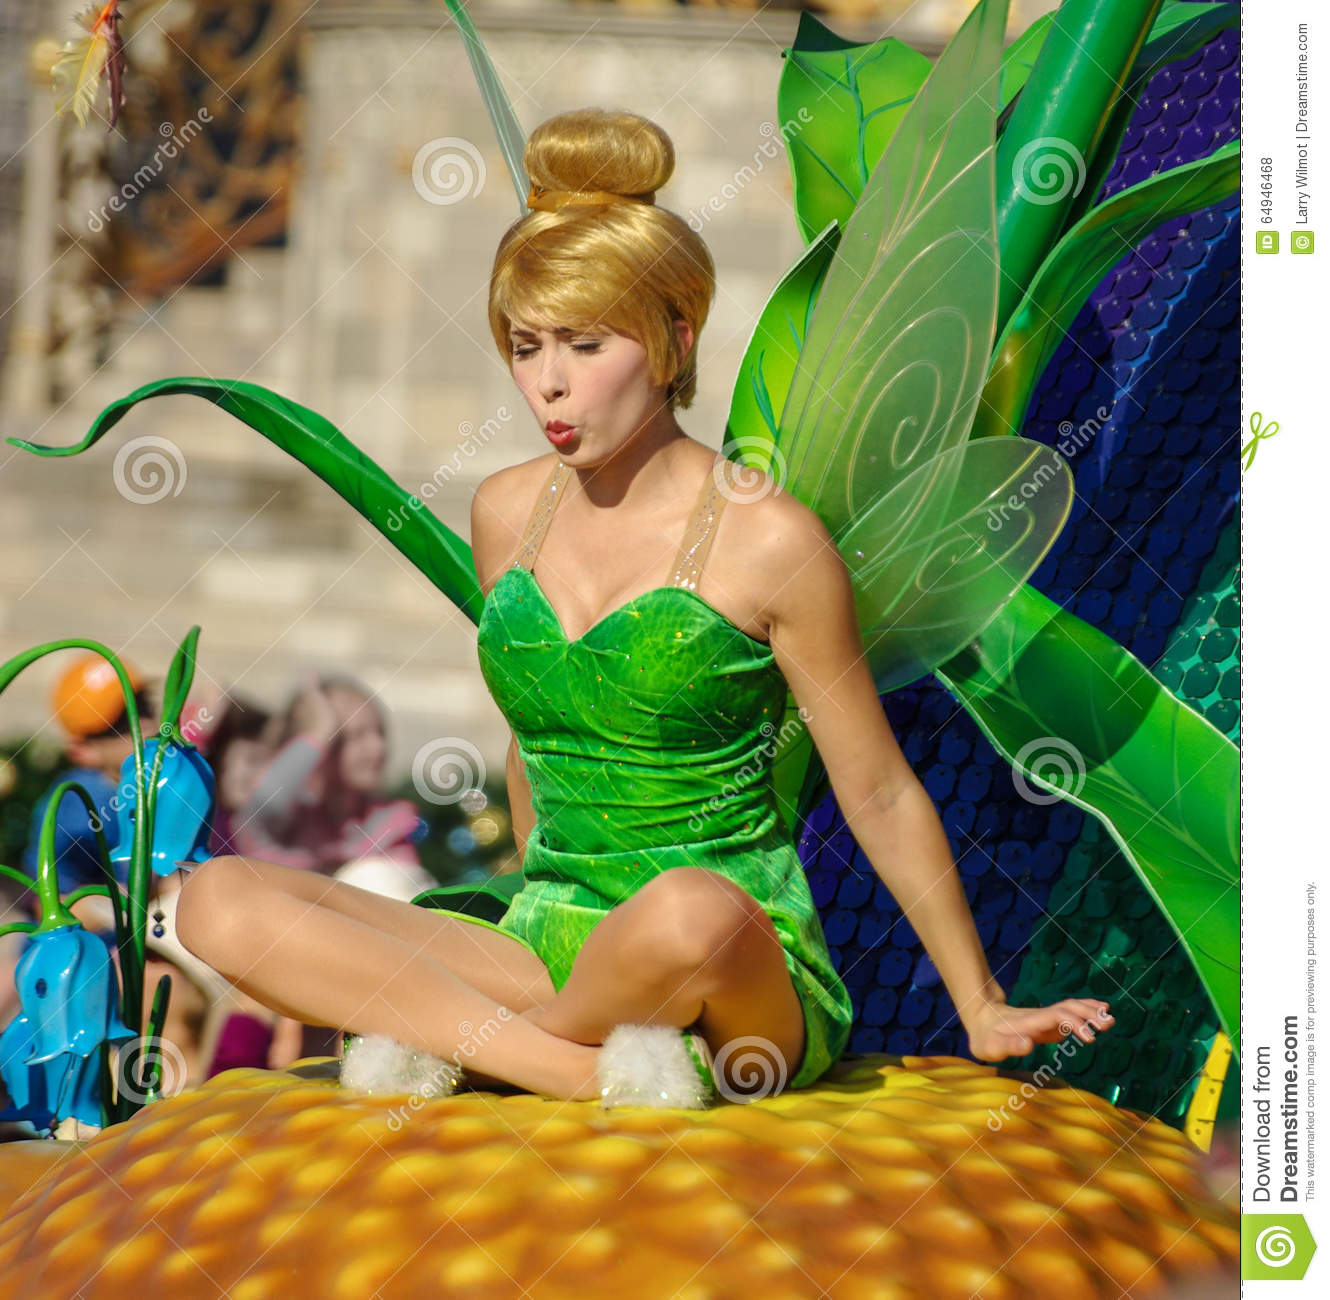 tinkerbell in the parade at walt disney world editorial cityscape clipart picsart cityscape clip art free